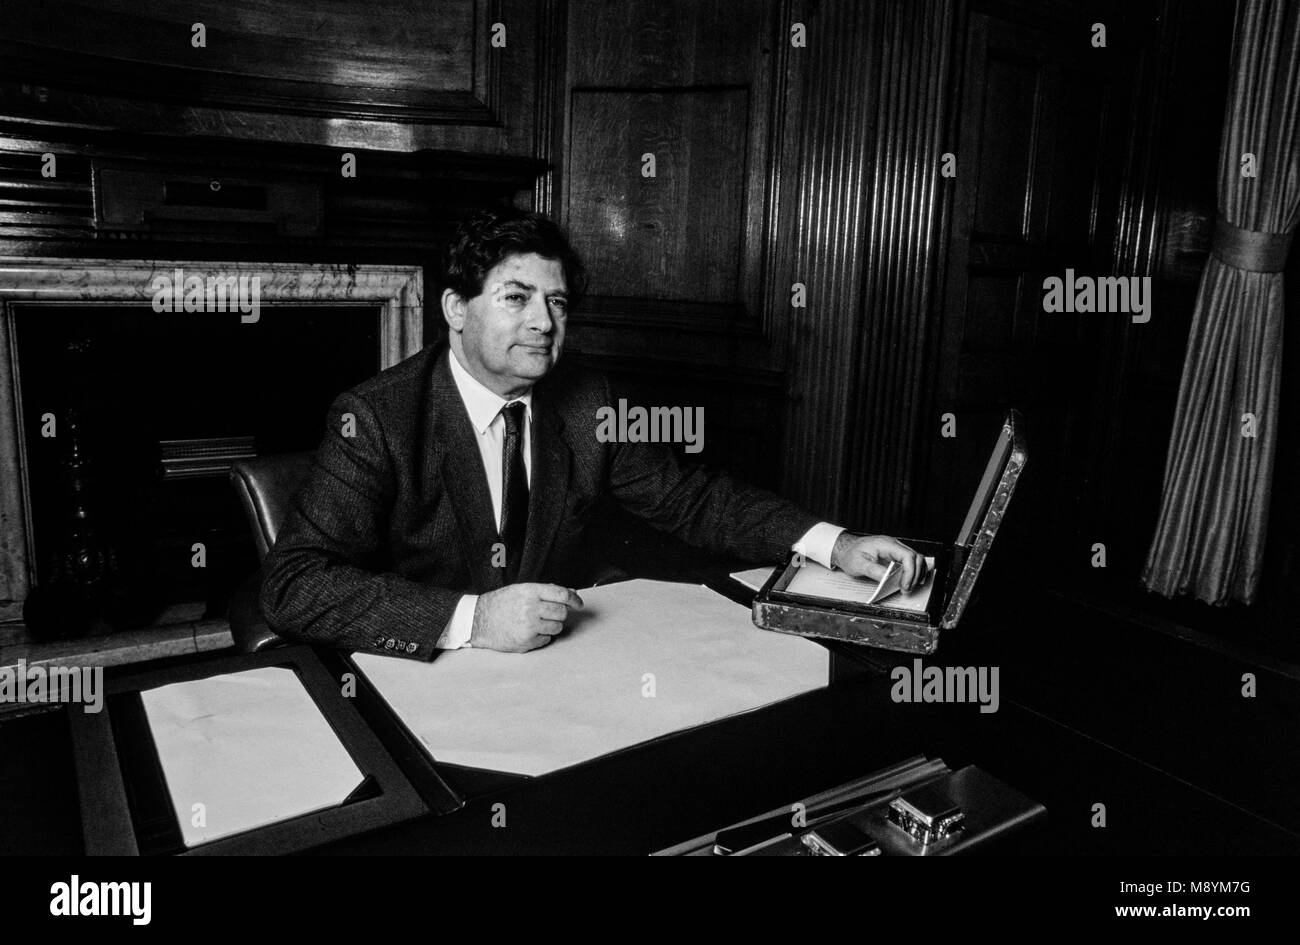 Nigel Lawson Chancellor of the Exchequer with the Budget Box before his 1986 budget. - Stock Image